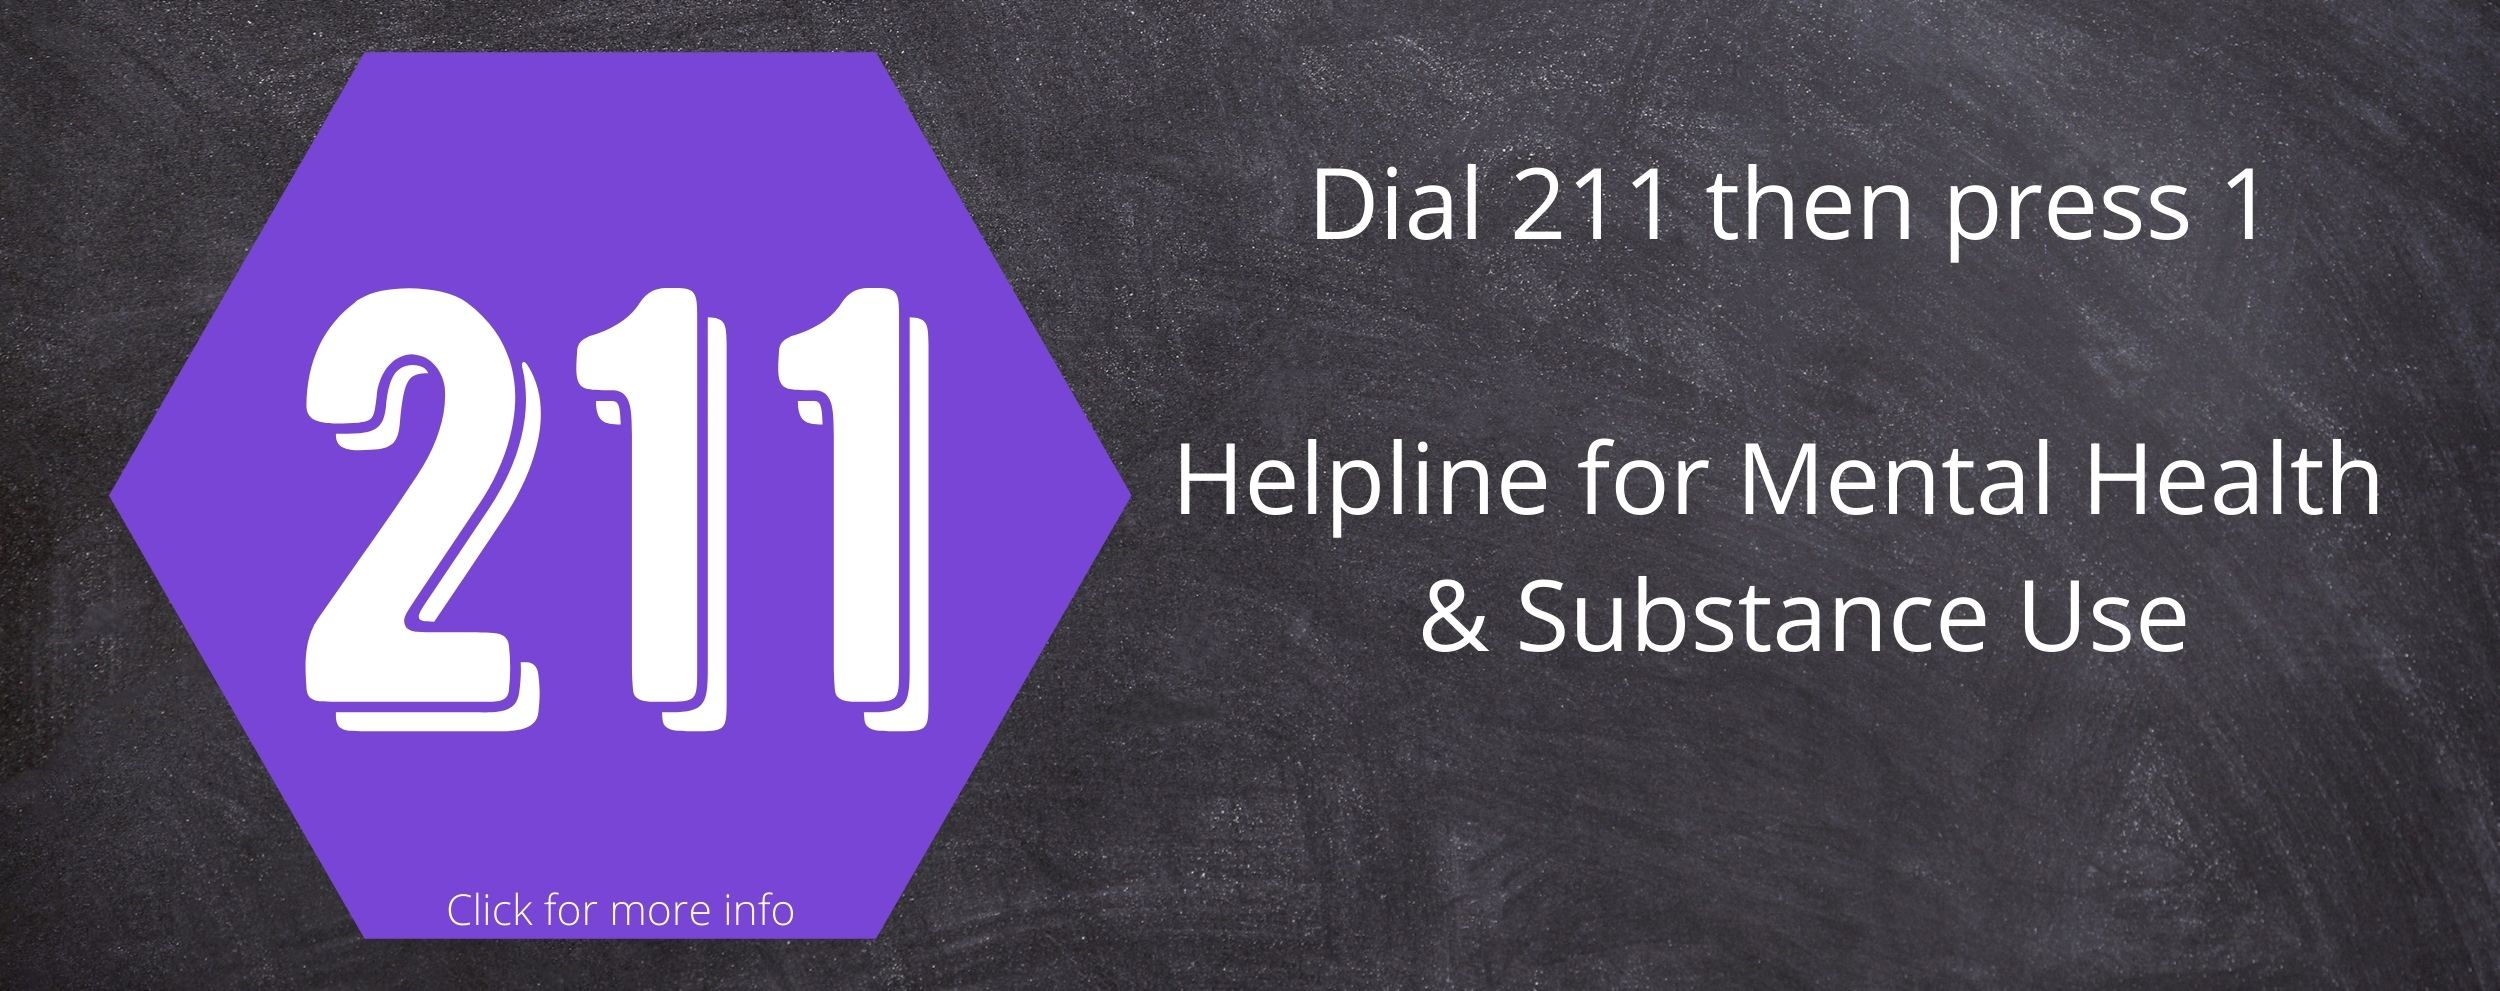 Helpline for Mental Health & Substance Use - Dial 211 then press 1